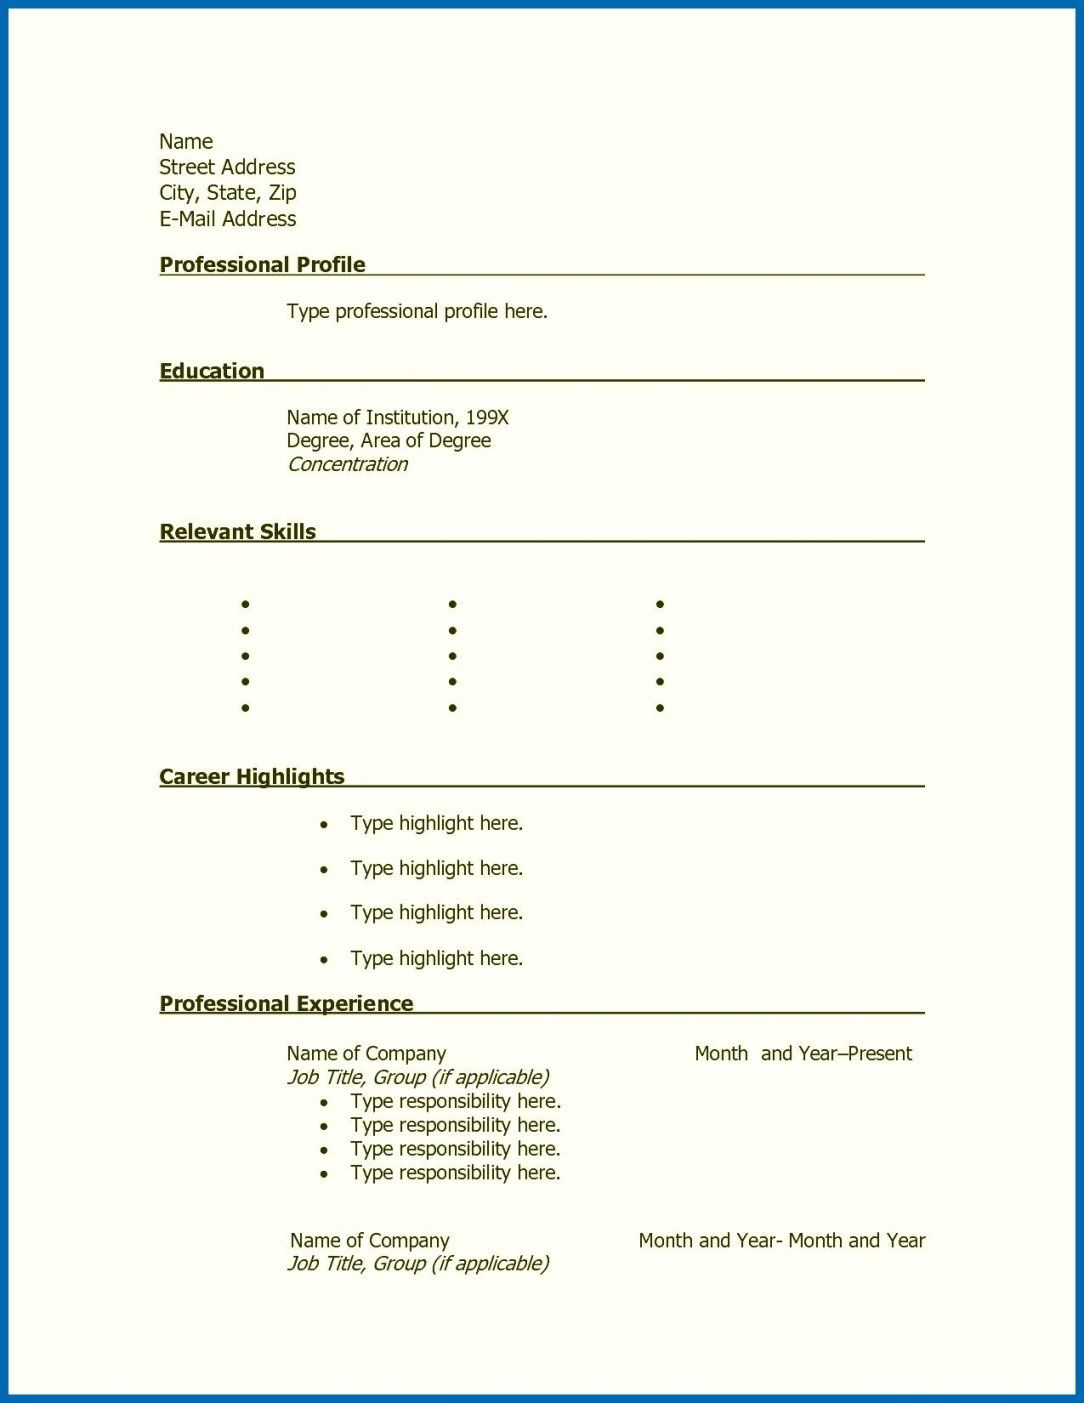 Printable Resume format, Free printable resume, Simple